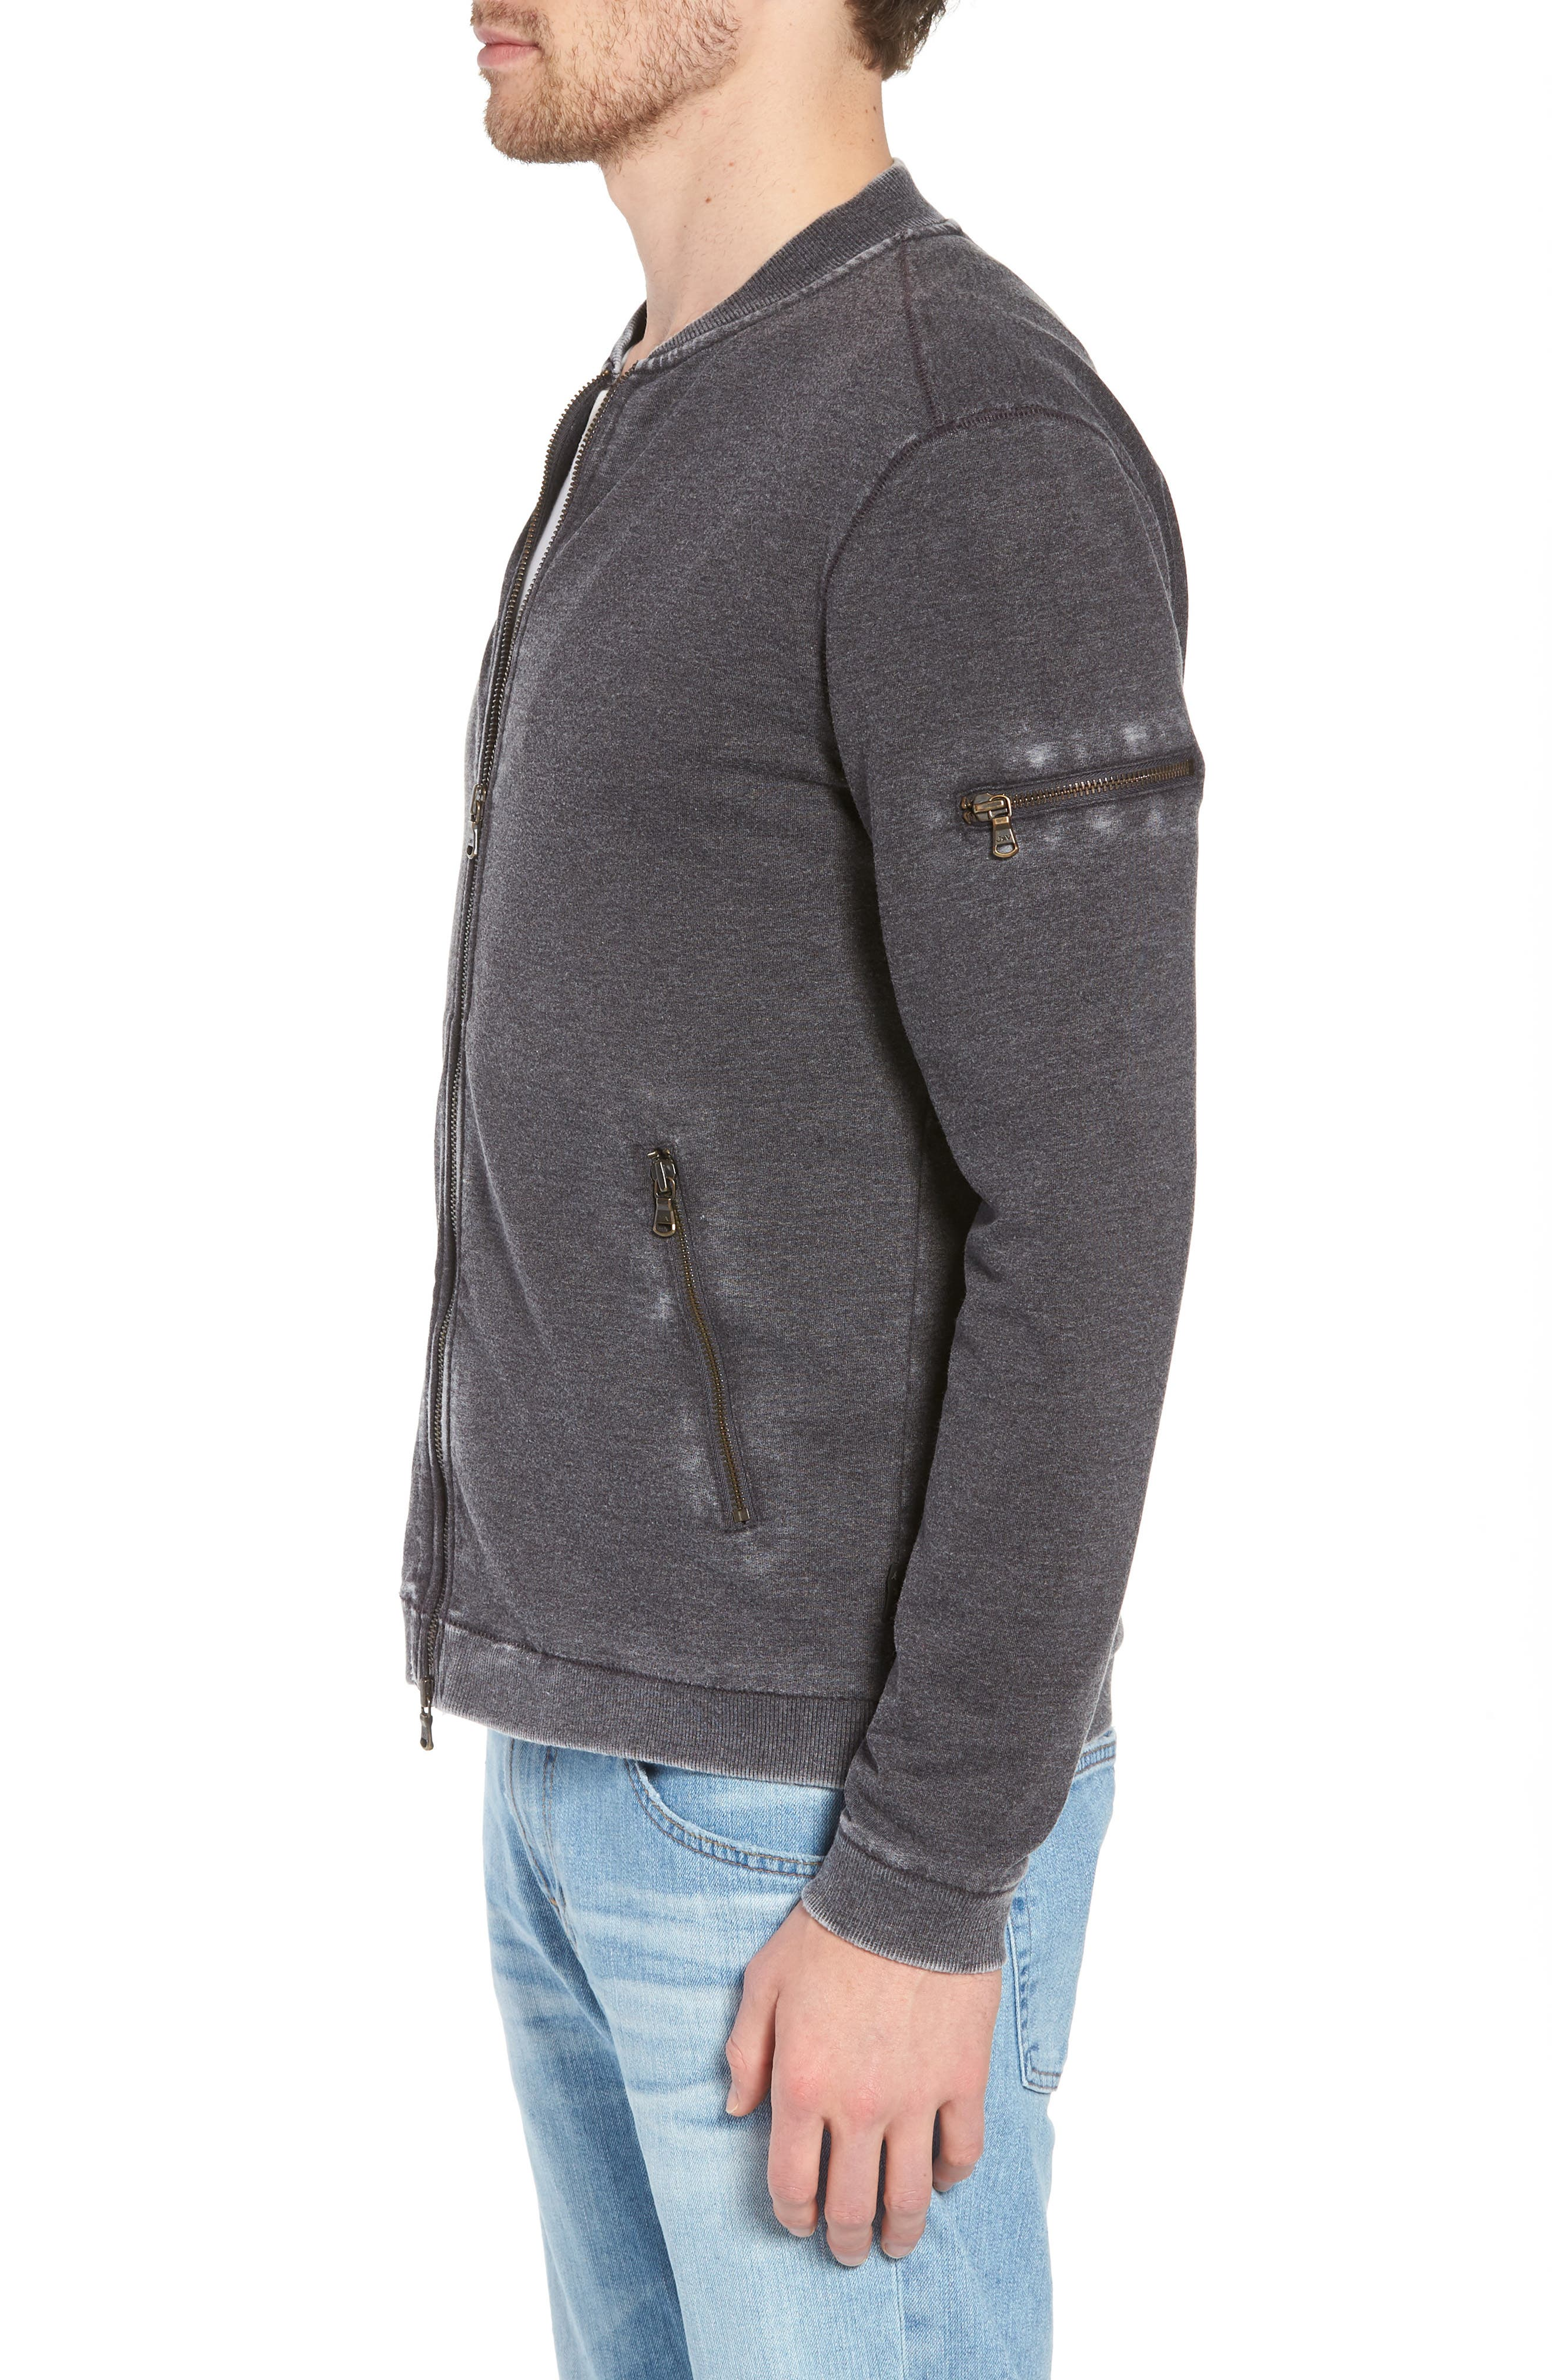 Burnout French Terry Zip Sweater,                             Alternate thumbnail 3, color,                             Metal Grey